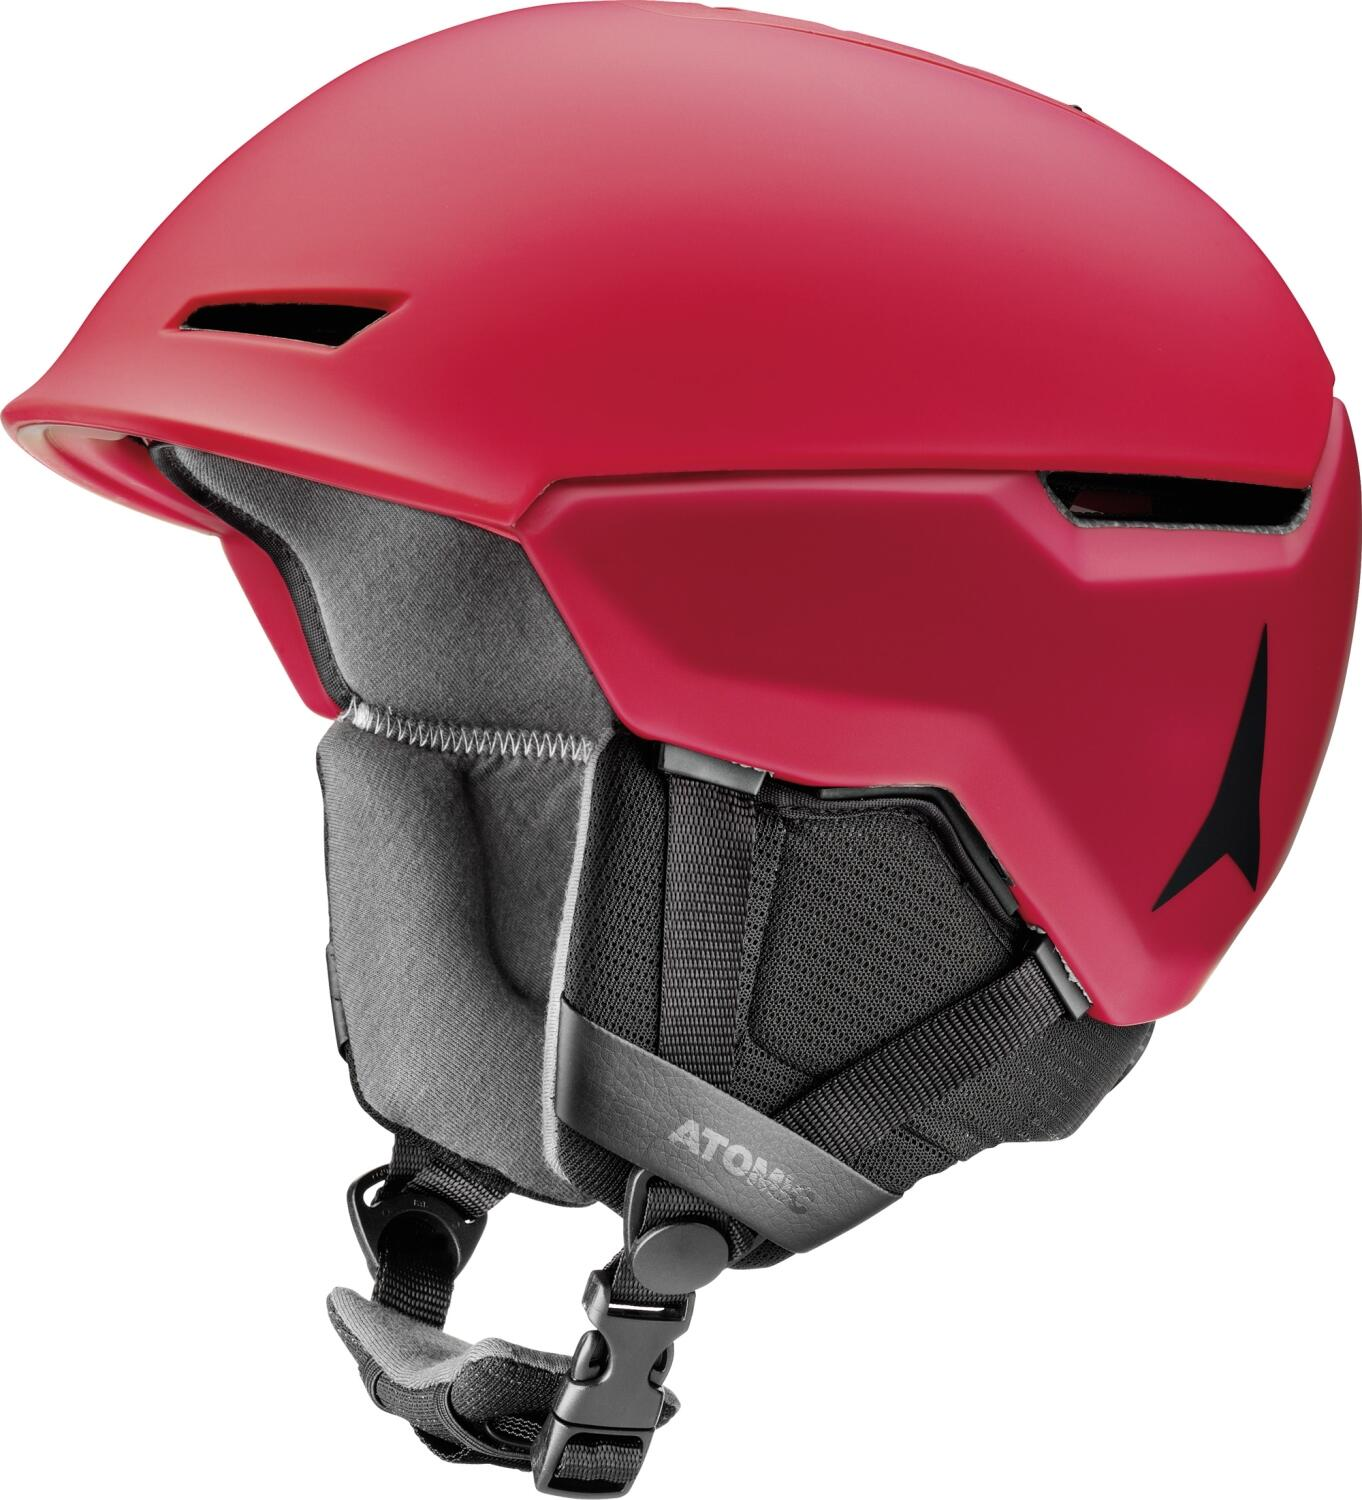 atomic-revent-lf-allmountain-skihelm-gr-ouml-szlig-e-51-55-cm-red-